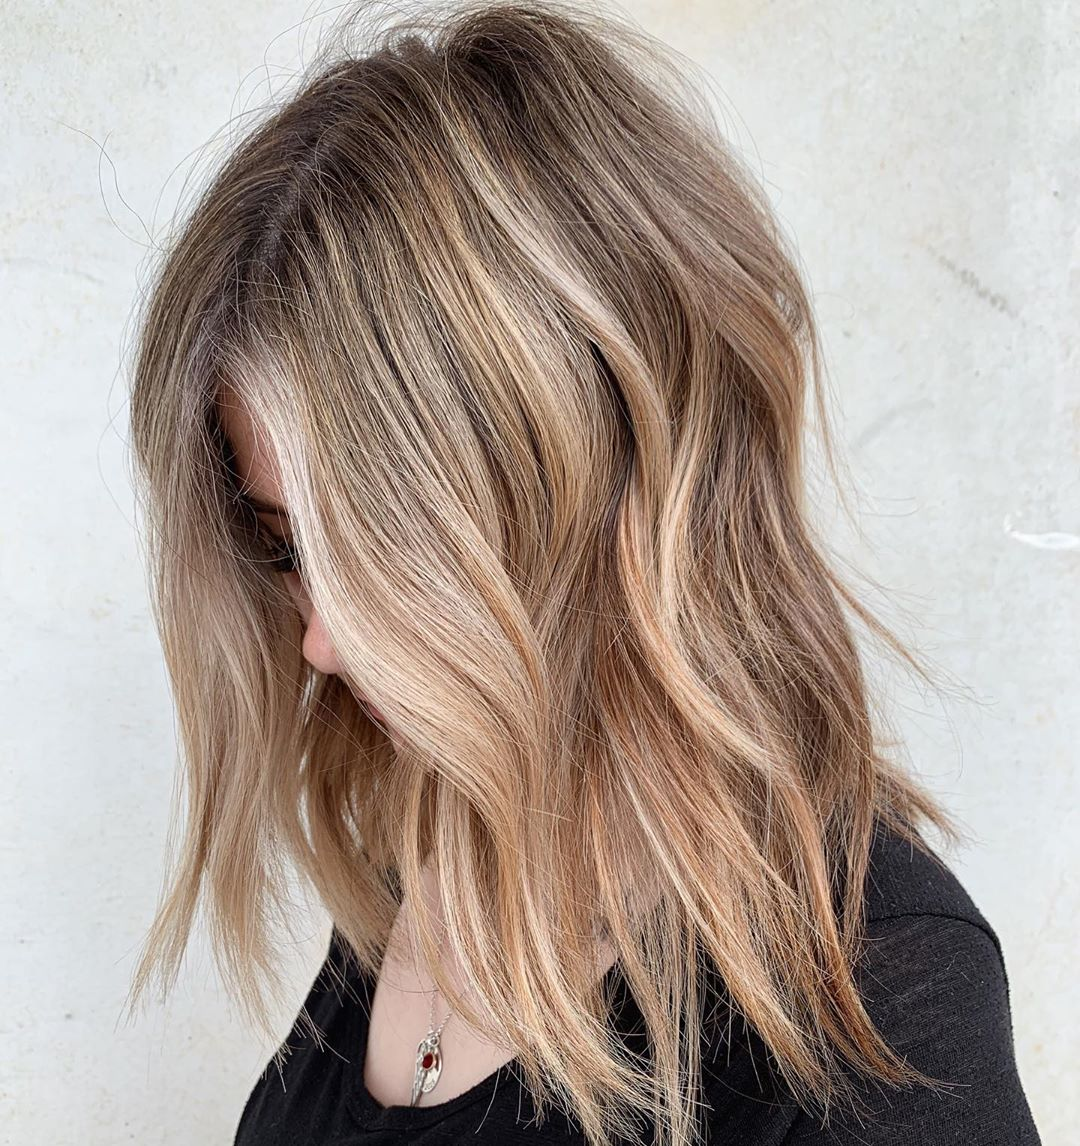 Bronde Hair with Blonde and Caramel Highlights